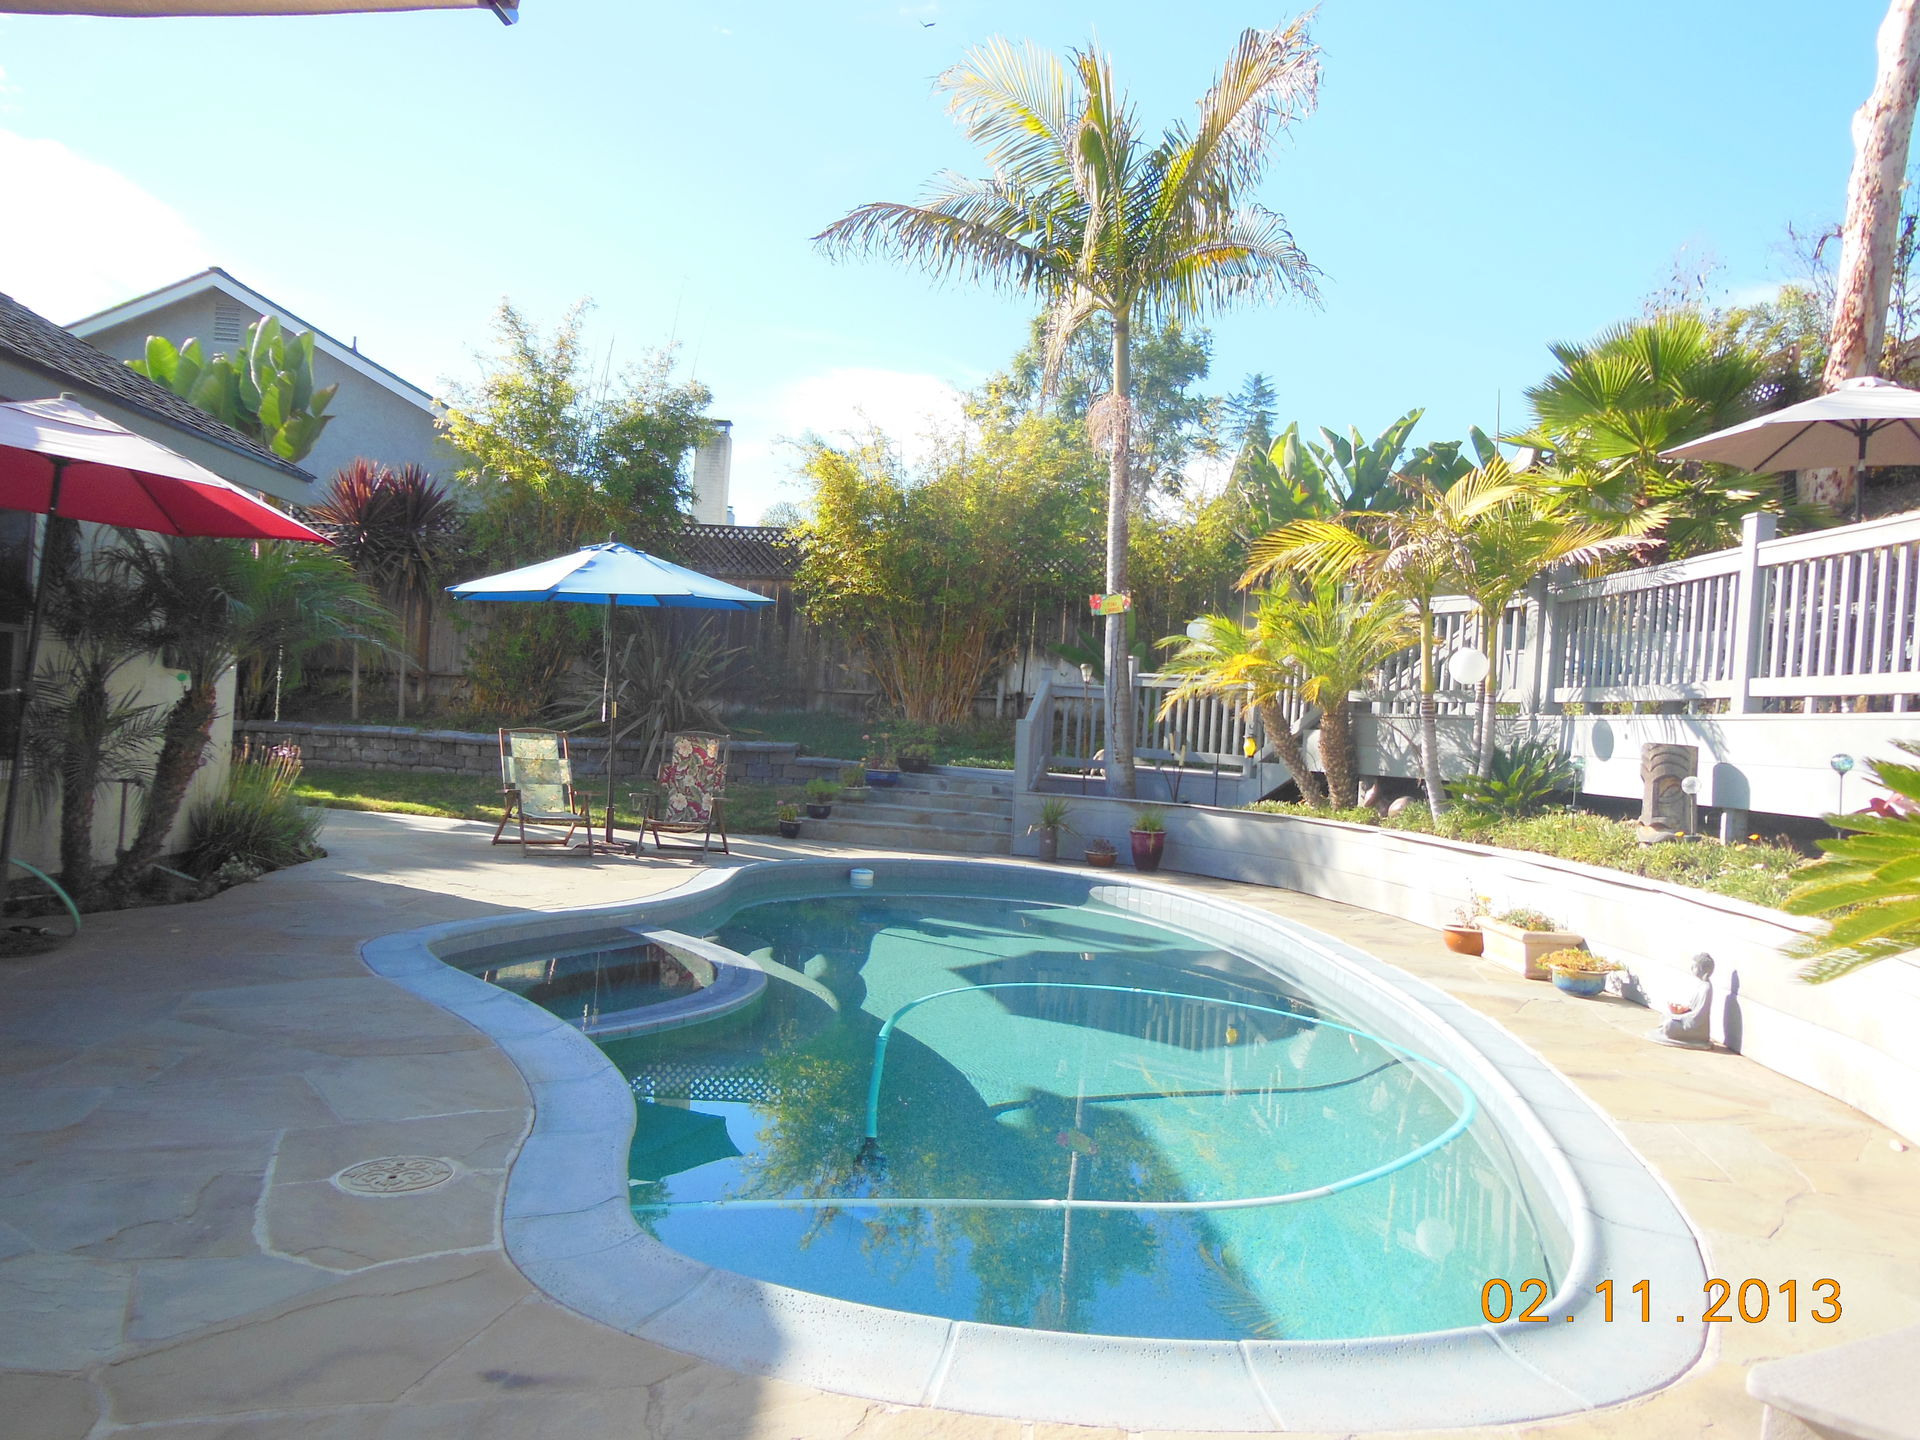 Tropical Backyard Paradise! Bring the pets. Pool, deck, spa, garden ...